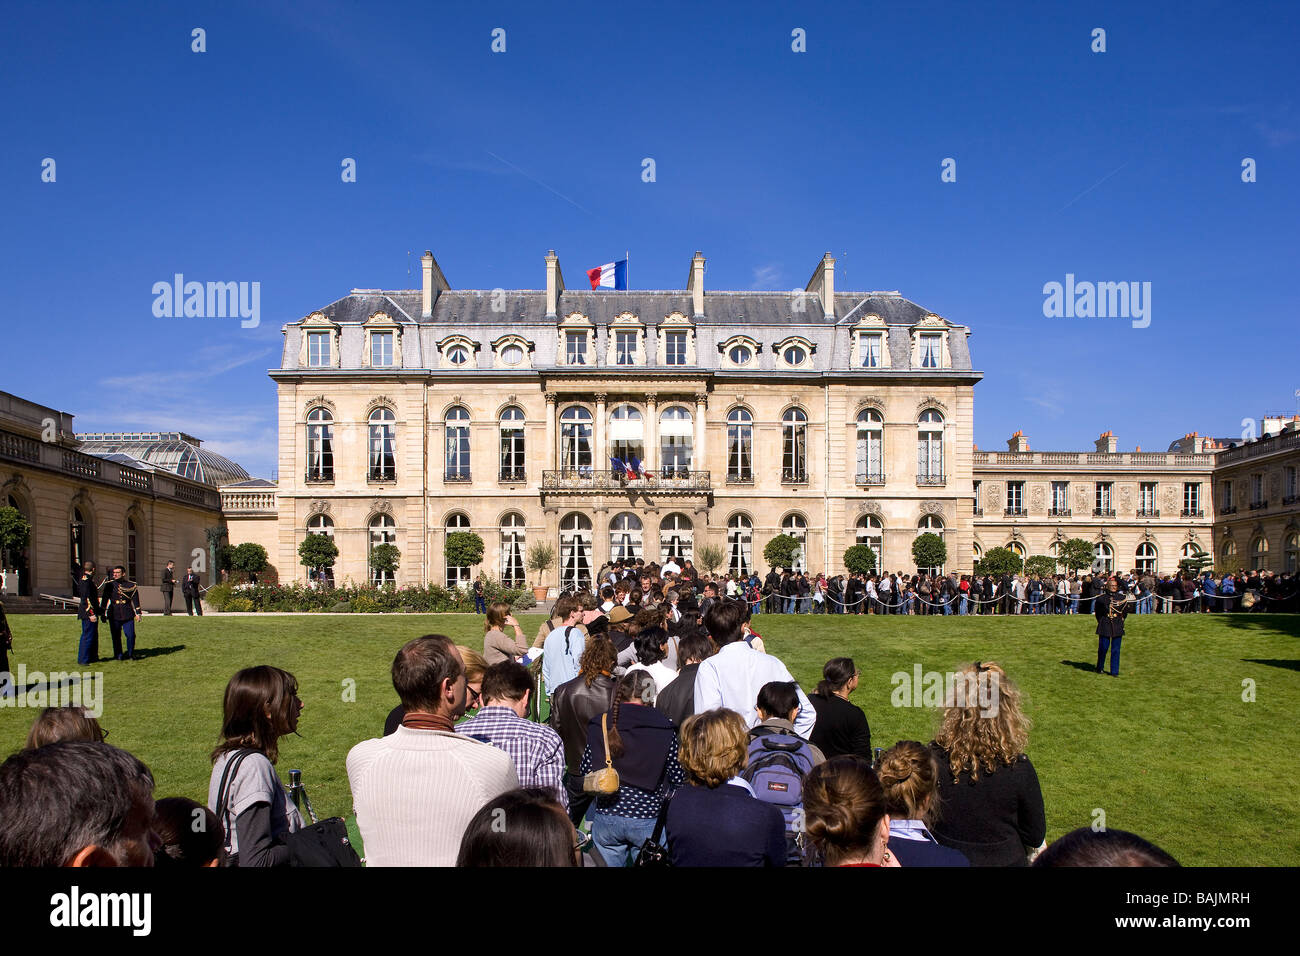 france paris palais de l 39 elysee elysee palace open to the public stock photo royalty free. Black Bedroom Furniture Sets. Home Design Ideas